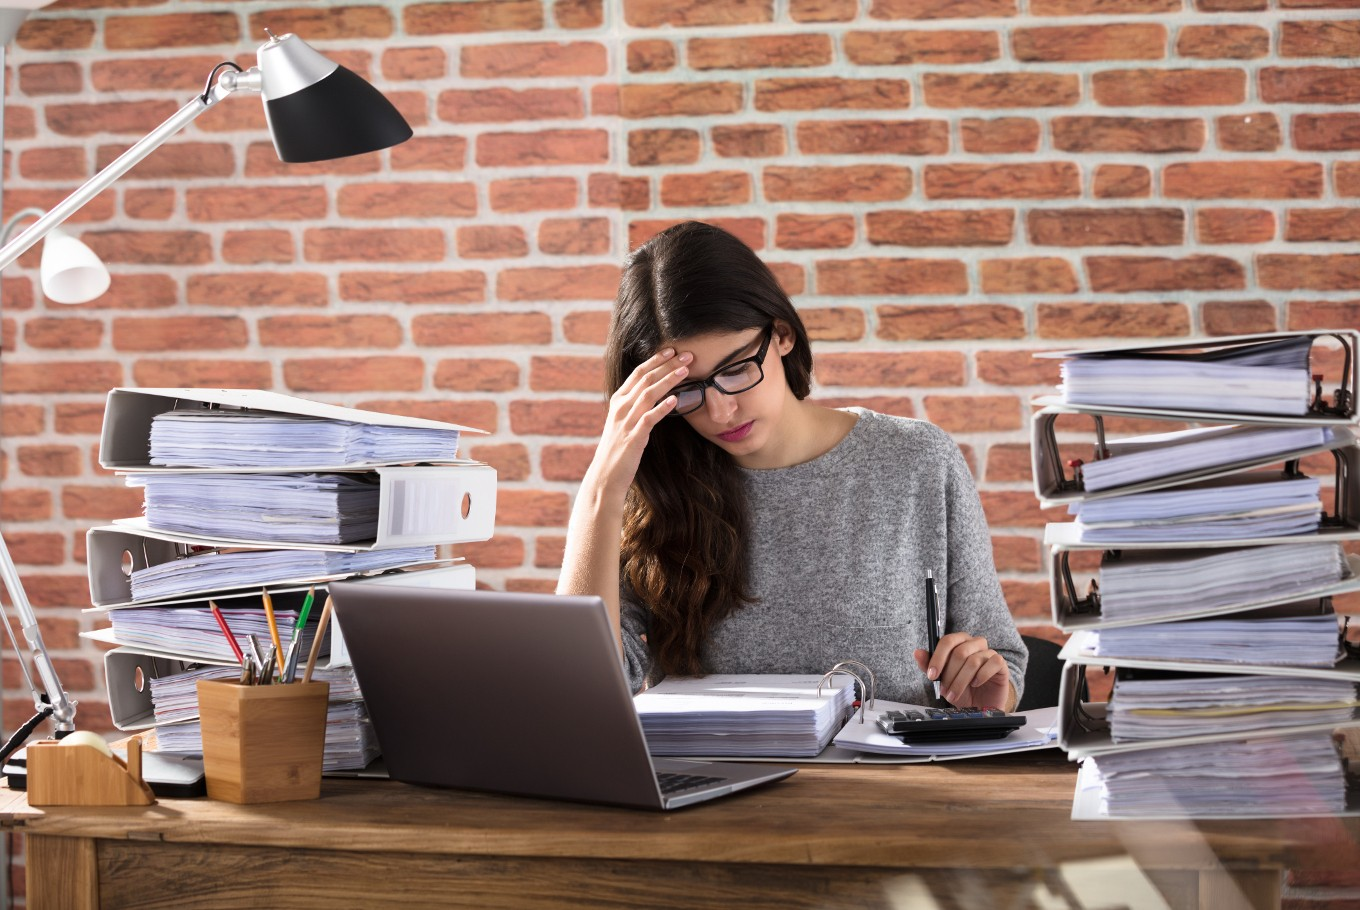 Those who did not organize a clear separation between work and free time were less likely to take part in activities that could help them relax and recover from the demands of their work. (Shutterstock/File)